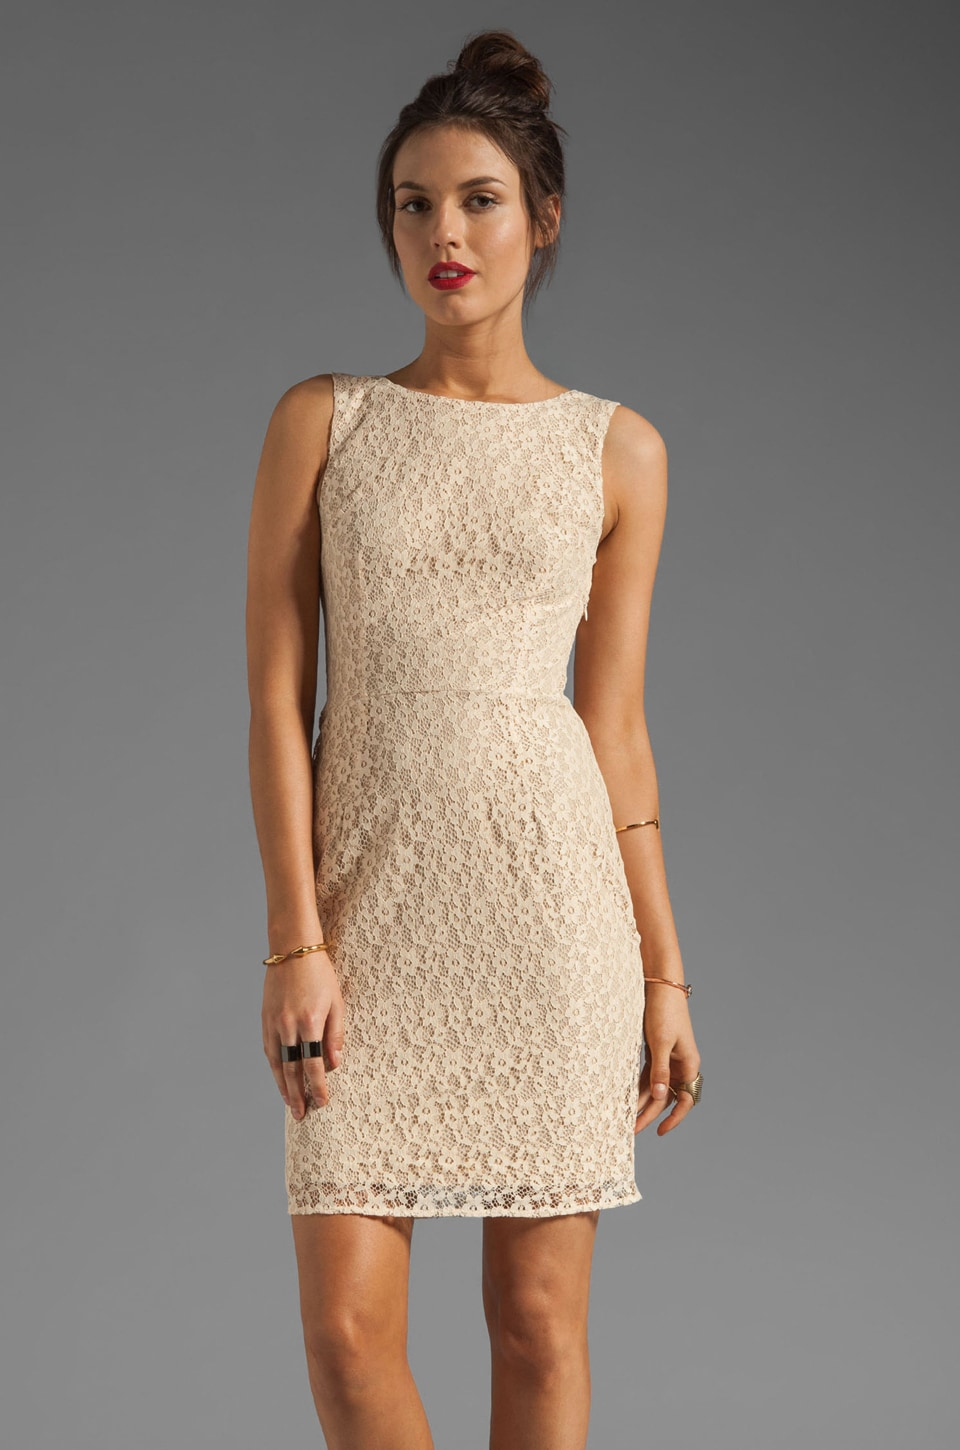 Paper Crown by Lauren Conrad Dartmouth Lace Dress in Peach